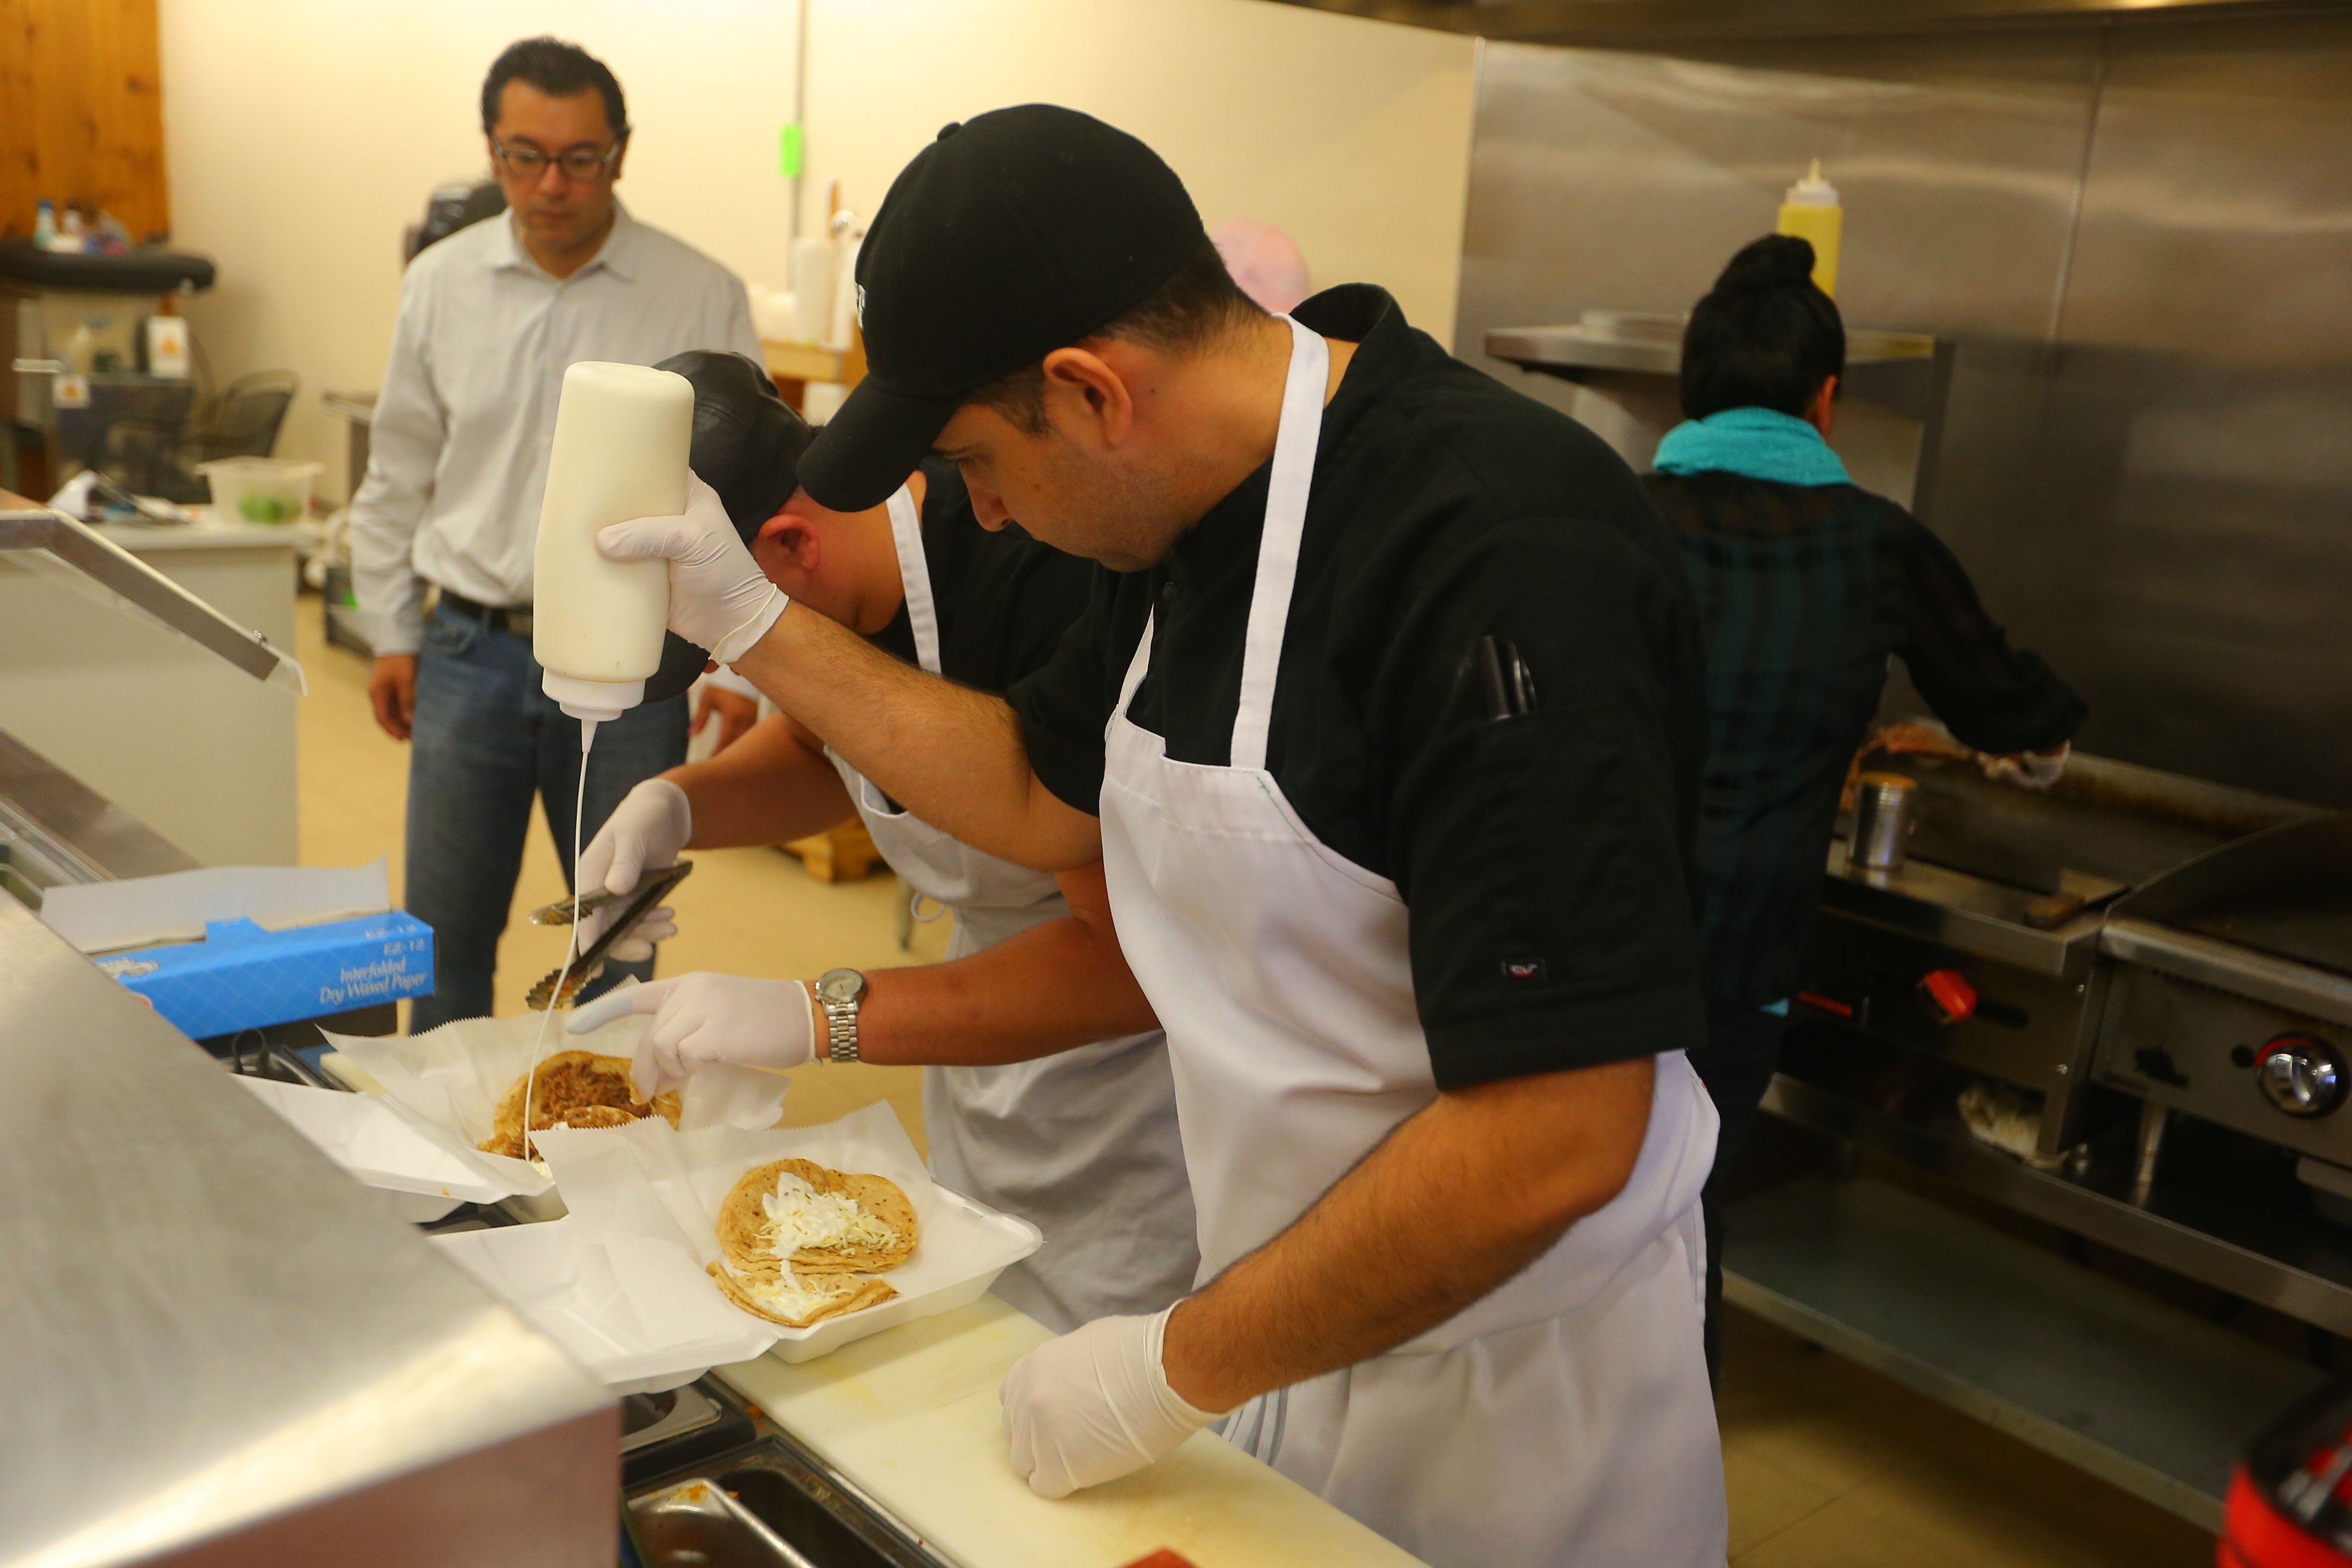 Sergio Mucino, left, looks on as workers put together a take out order at La Divina Mexican Store on Friday Oct. 21, 2016, La Divina Mexican Store reopened after briefly closing following a raid by federal agents and the arrest of Mucino and several employees, in Kenmore, N.Y., earlier this week. (John Hickey/Buffalo News)